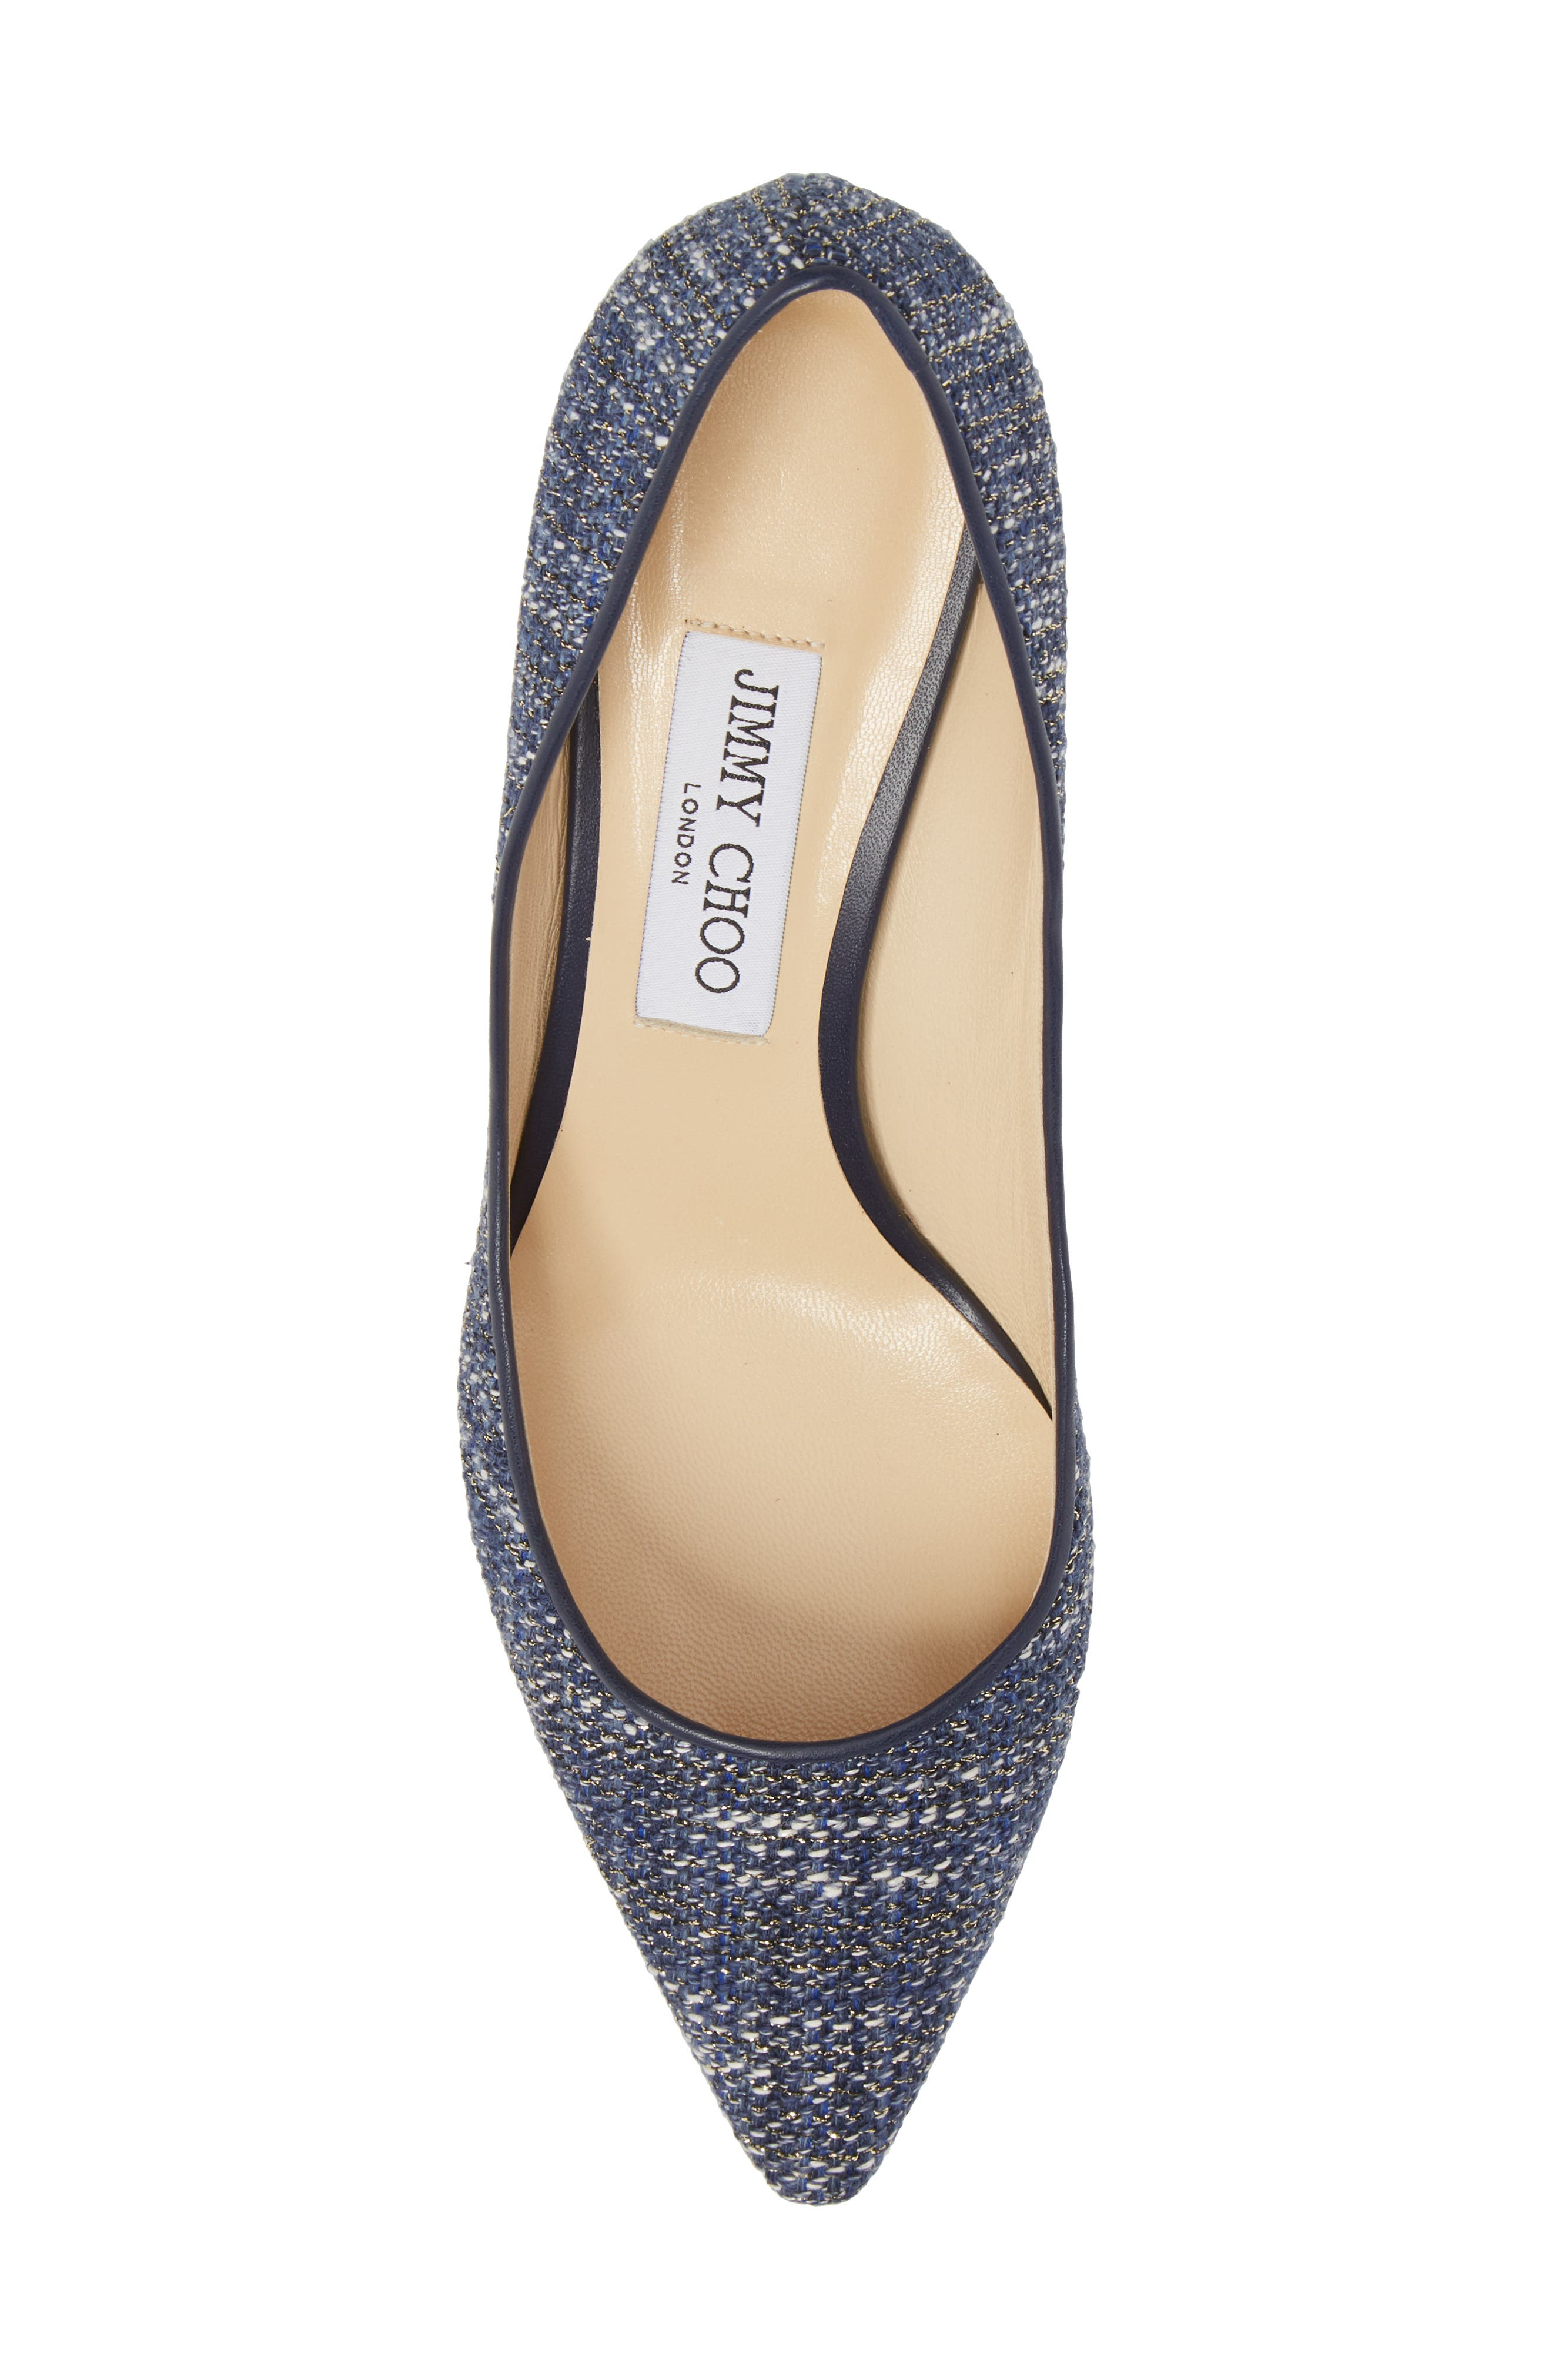 Romy Woven Pointy Toe Pump,                             Alternate thumbnail 5, color,                             410